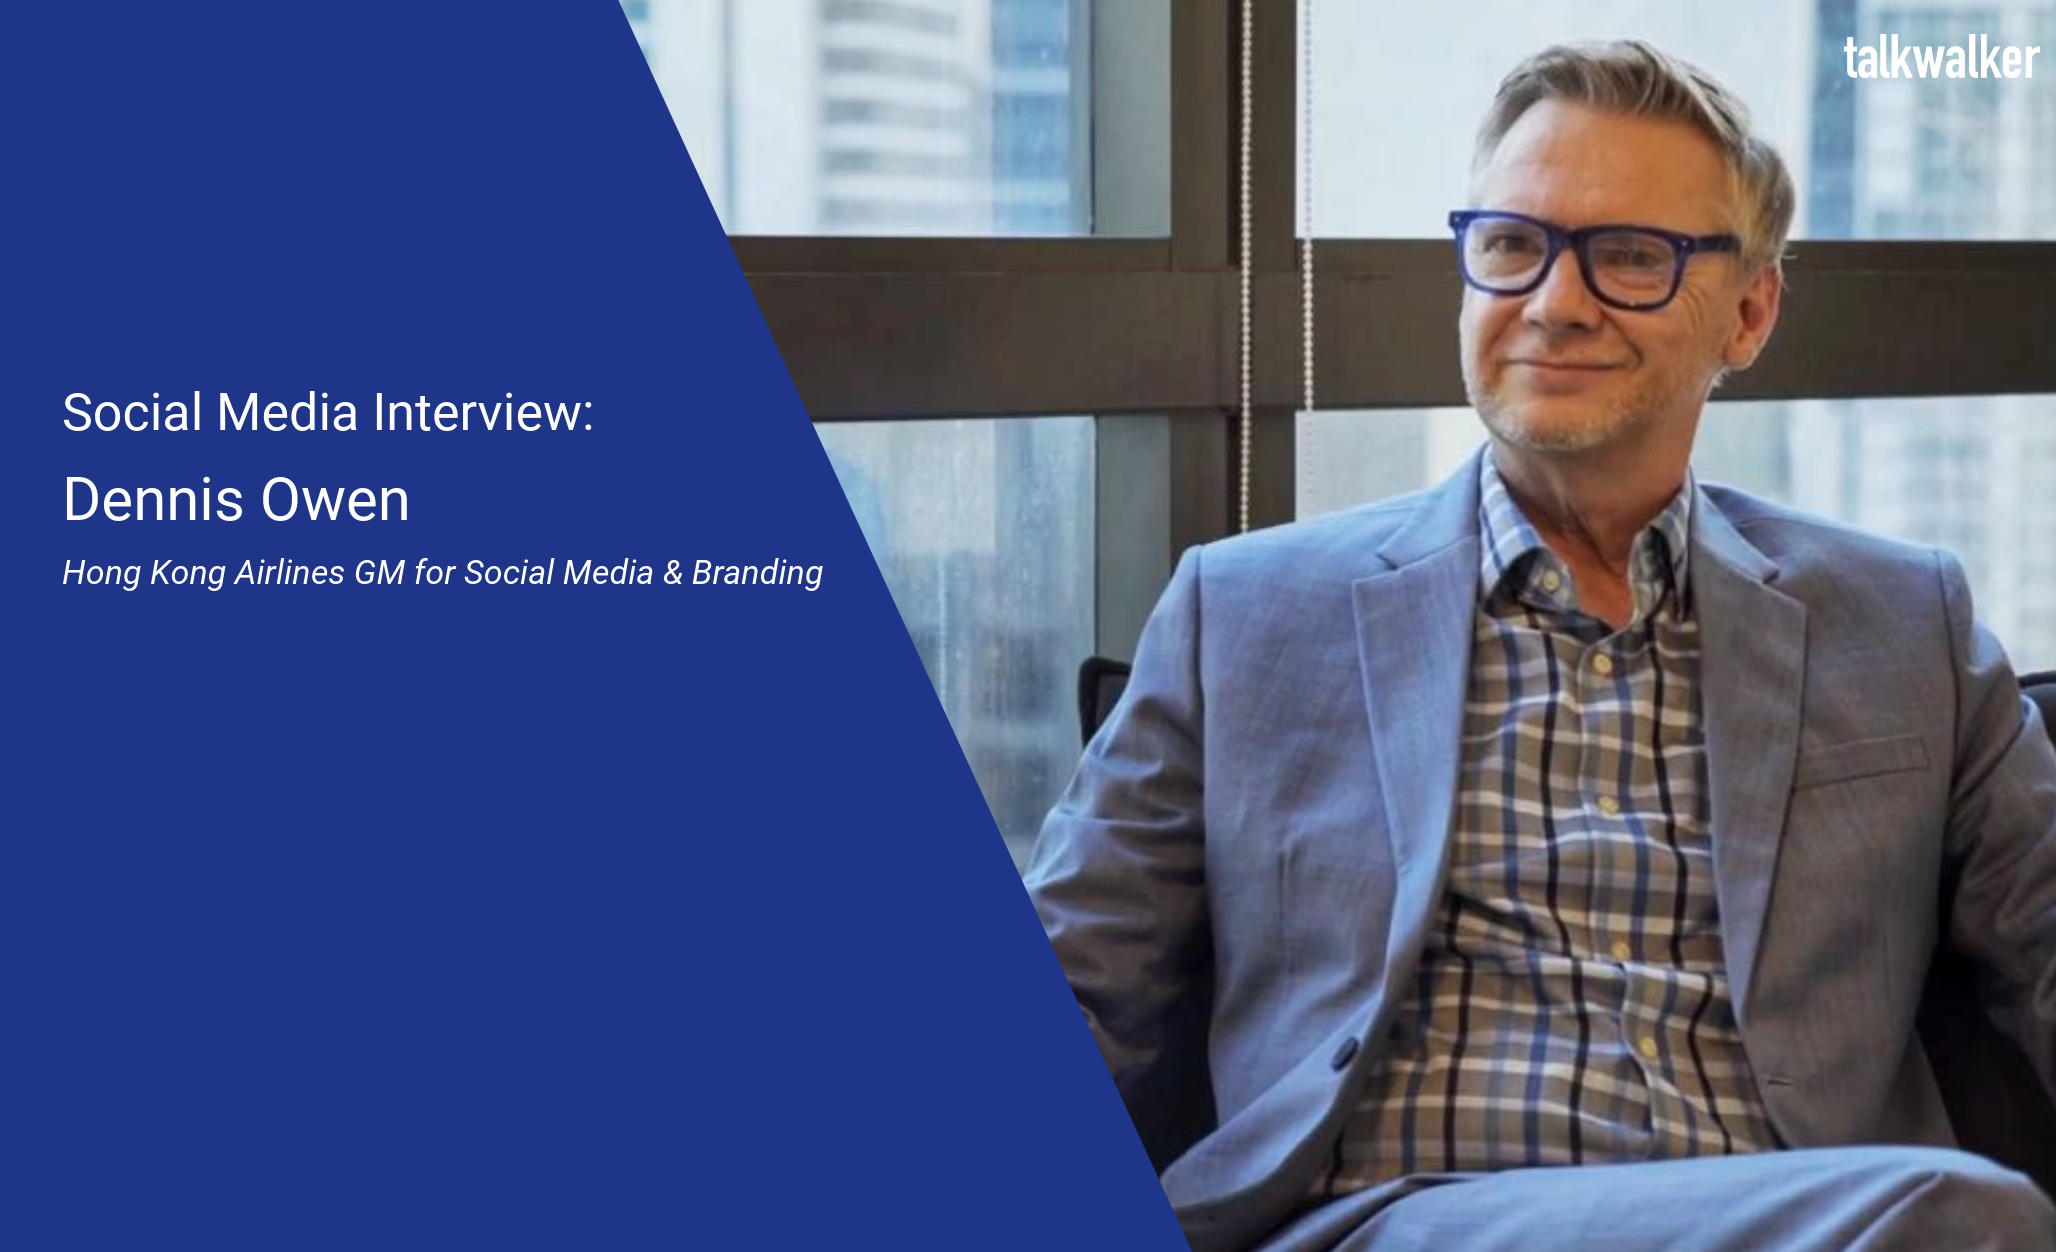 Social Media Interview with Hong Kong Airlines' Dennis Owen